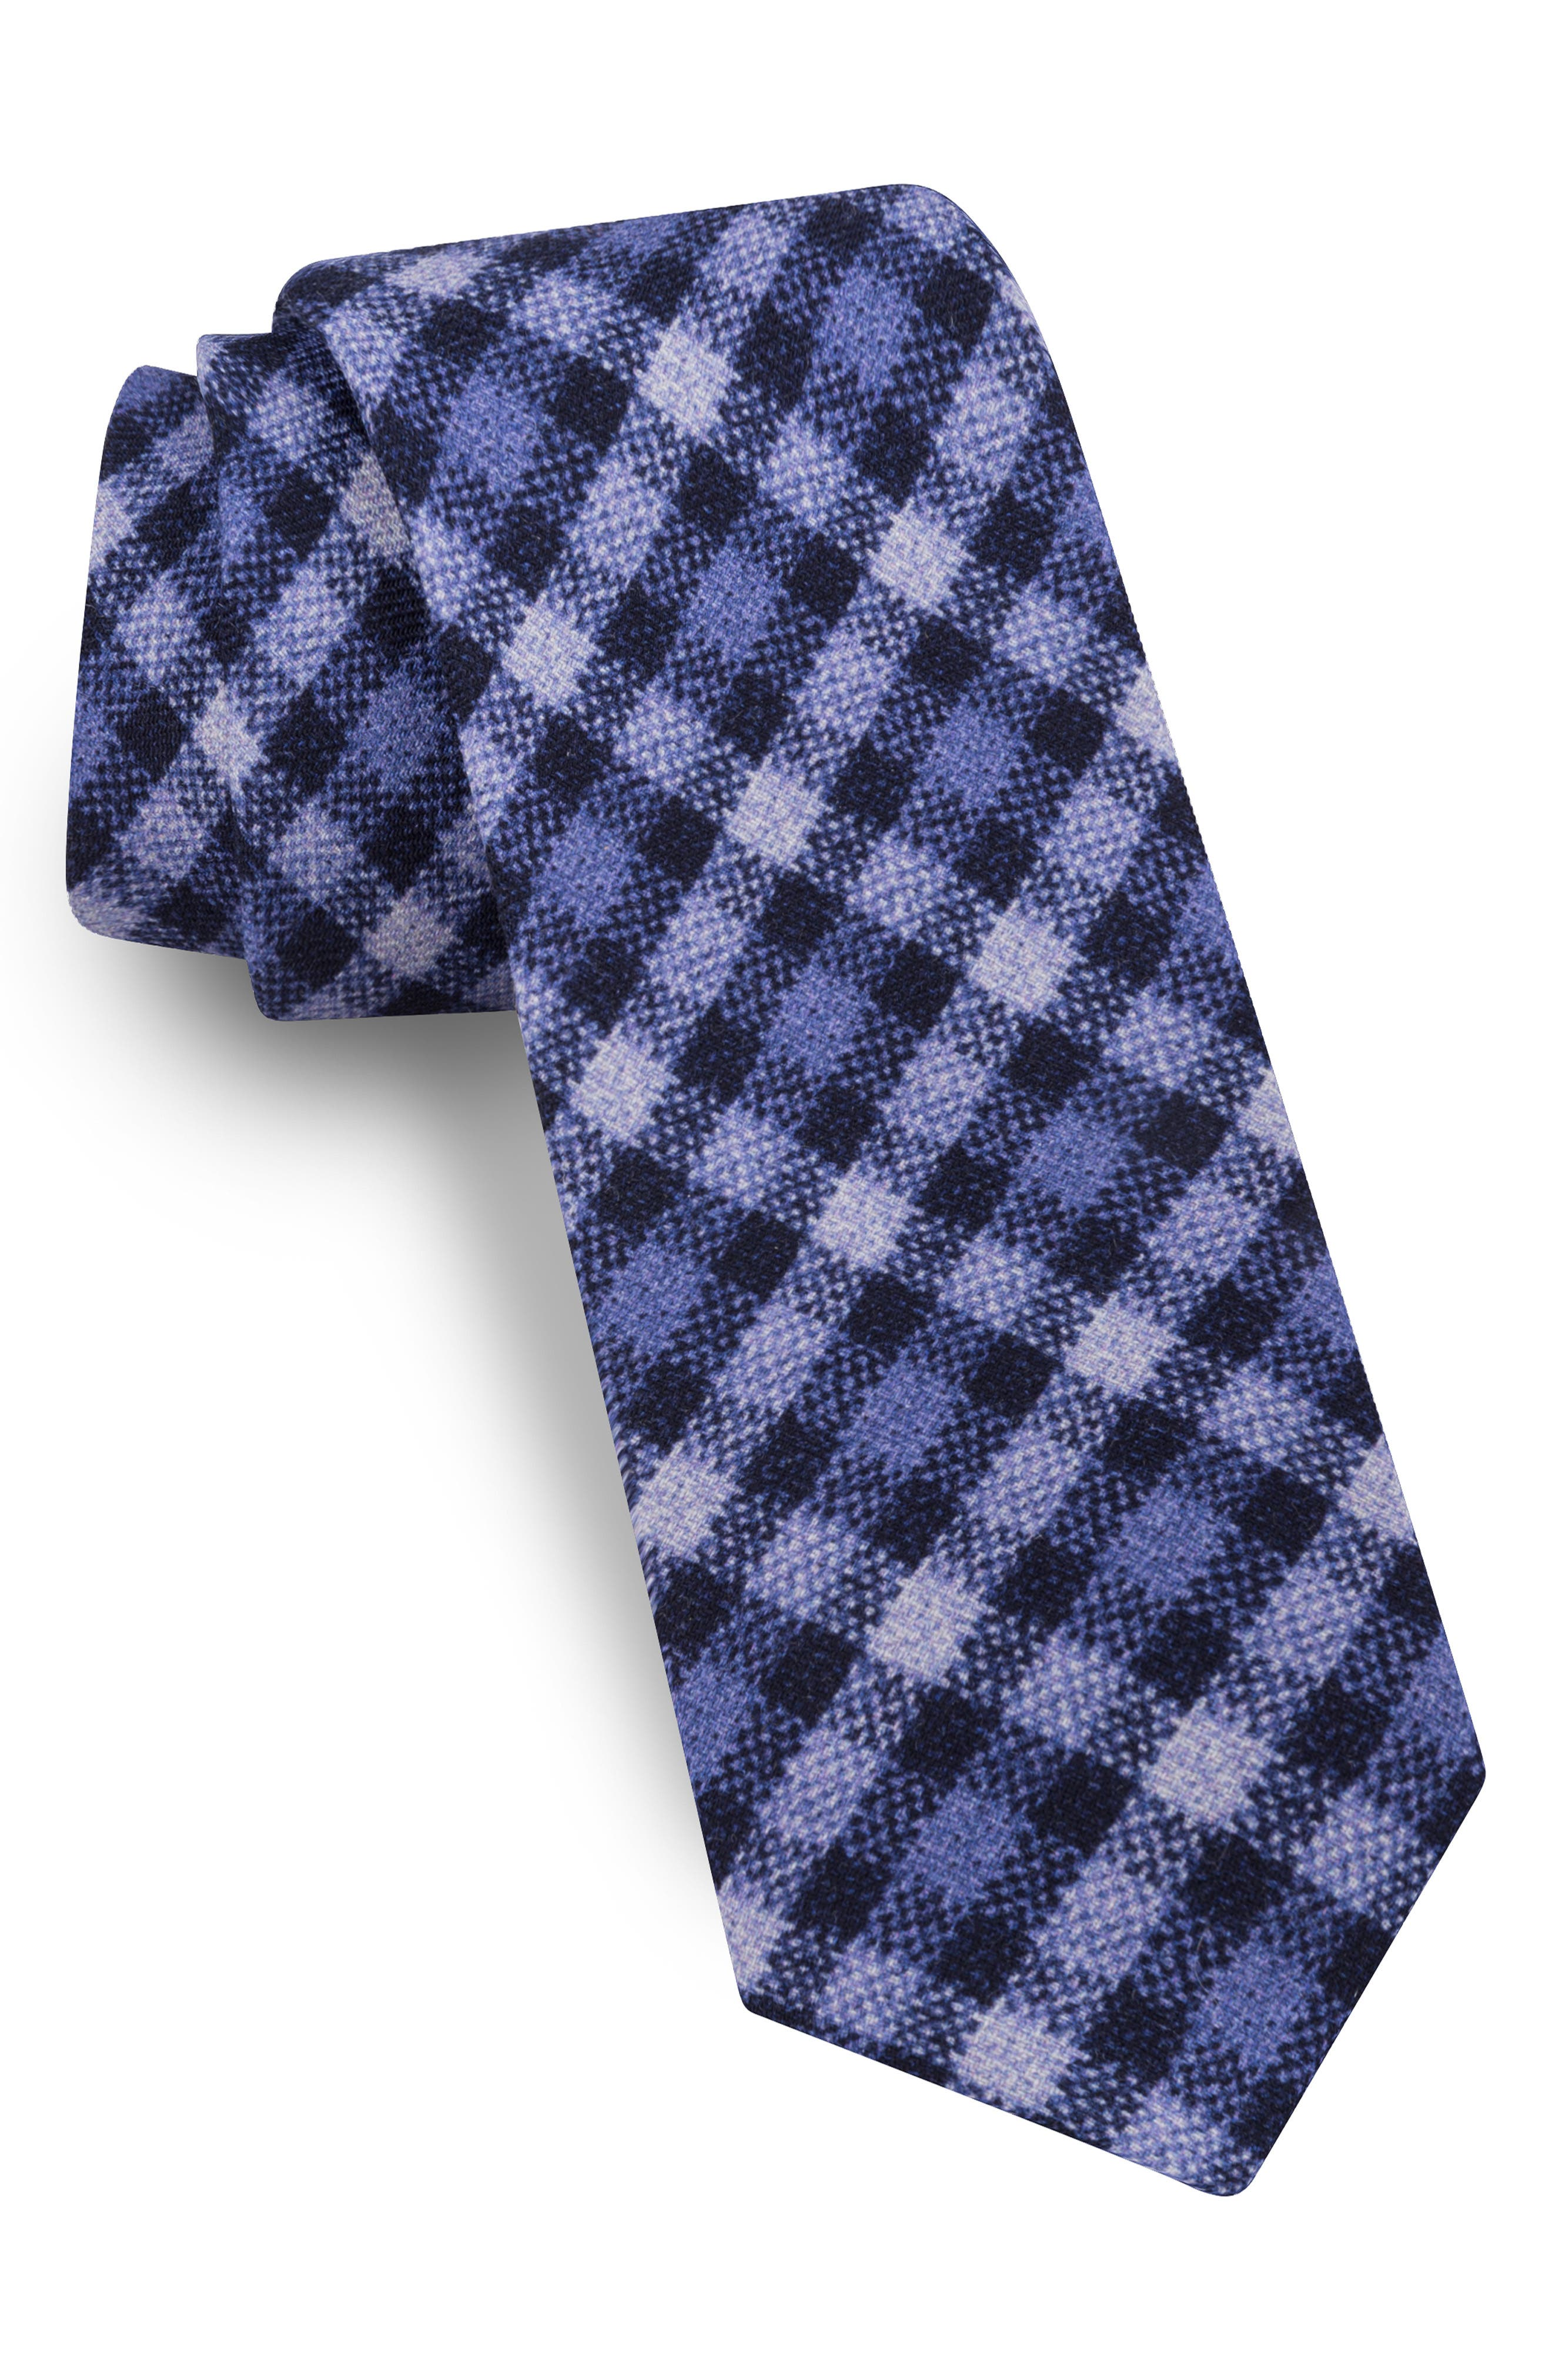 TED BAKER LONDON, Plaid Wool Tie, Main thumbnail 1, color, NAVY